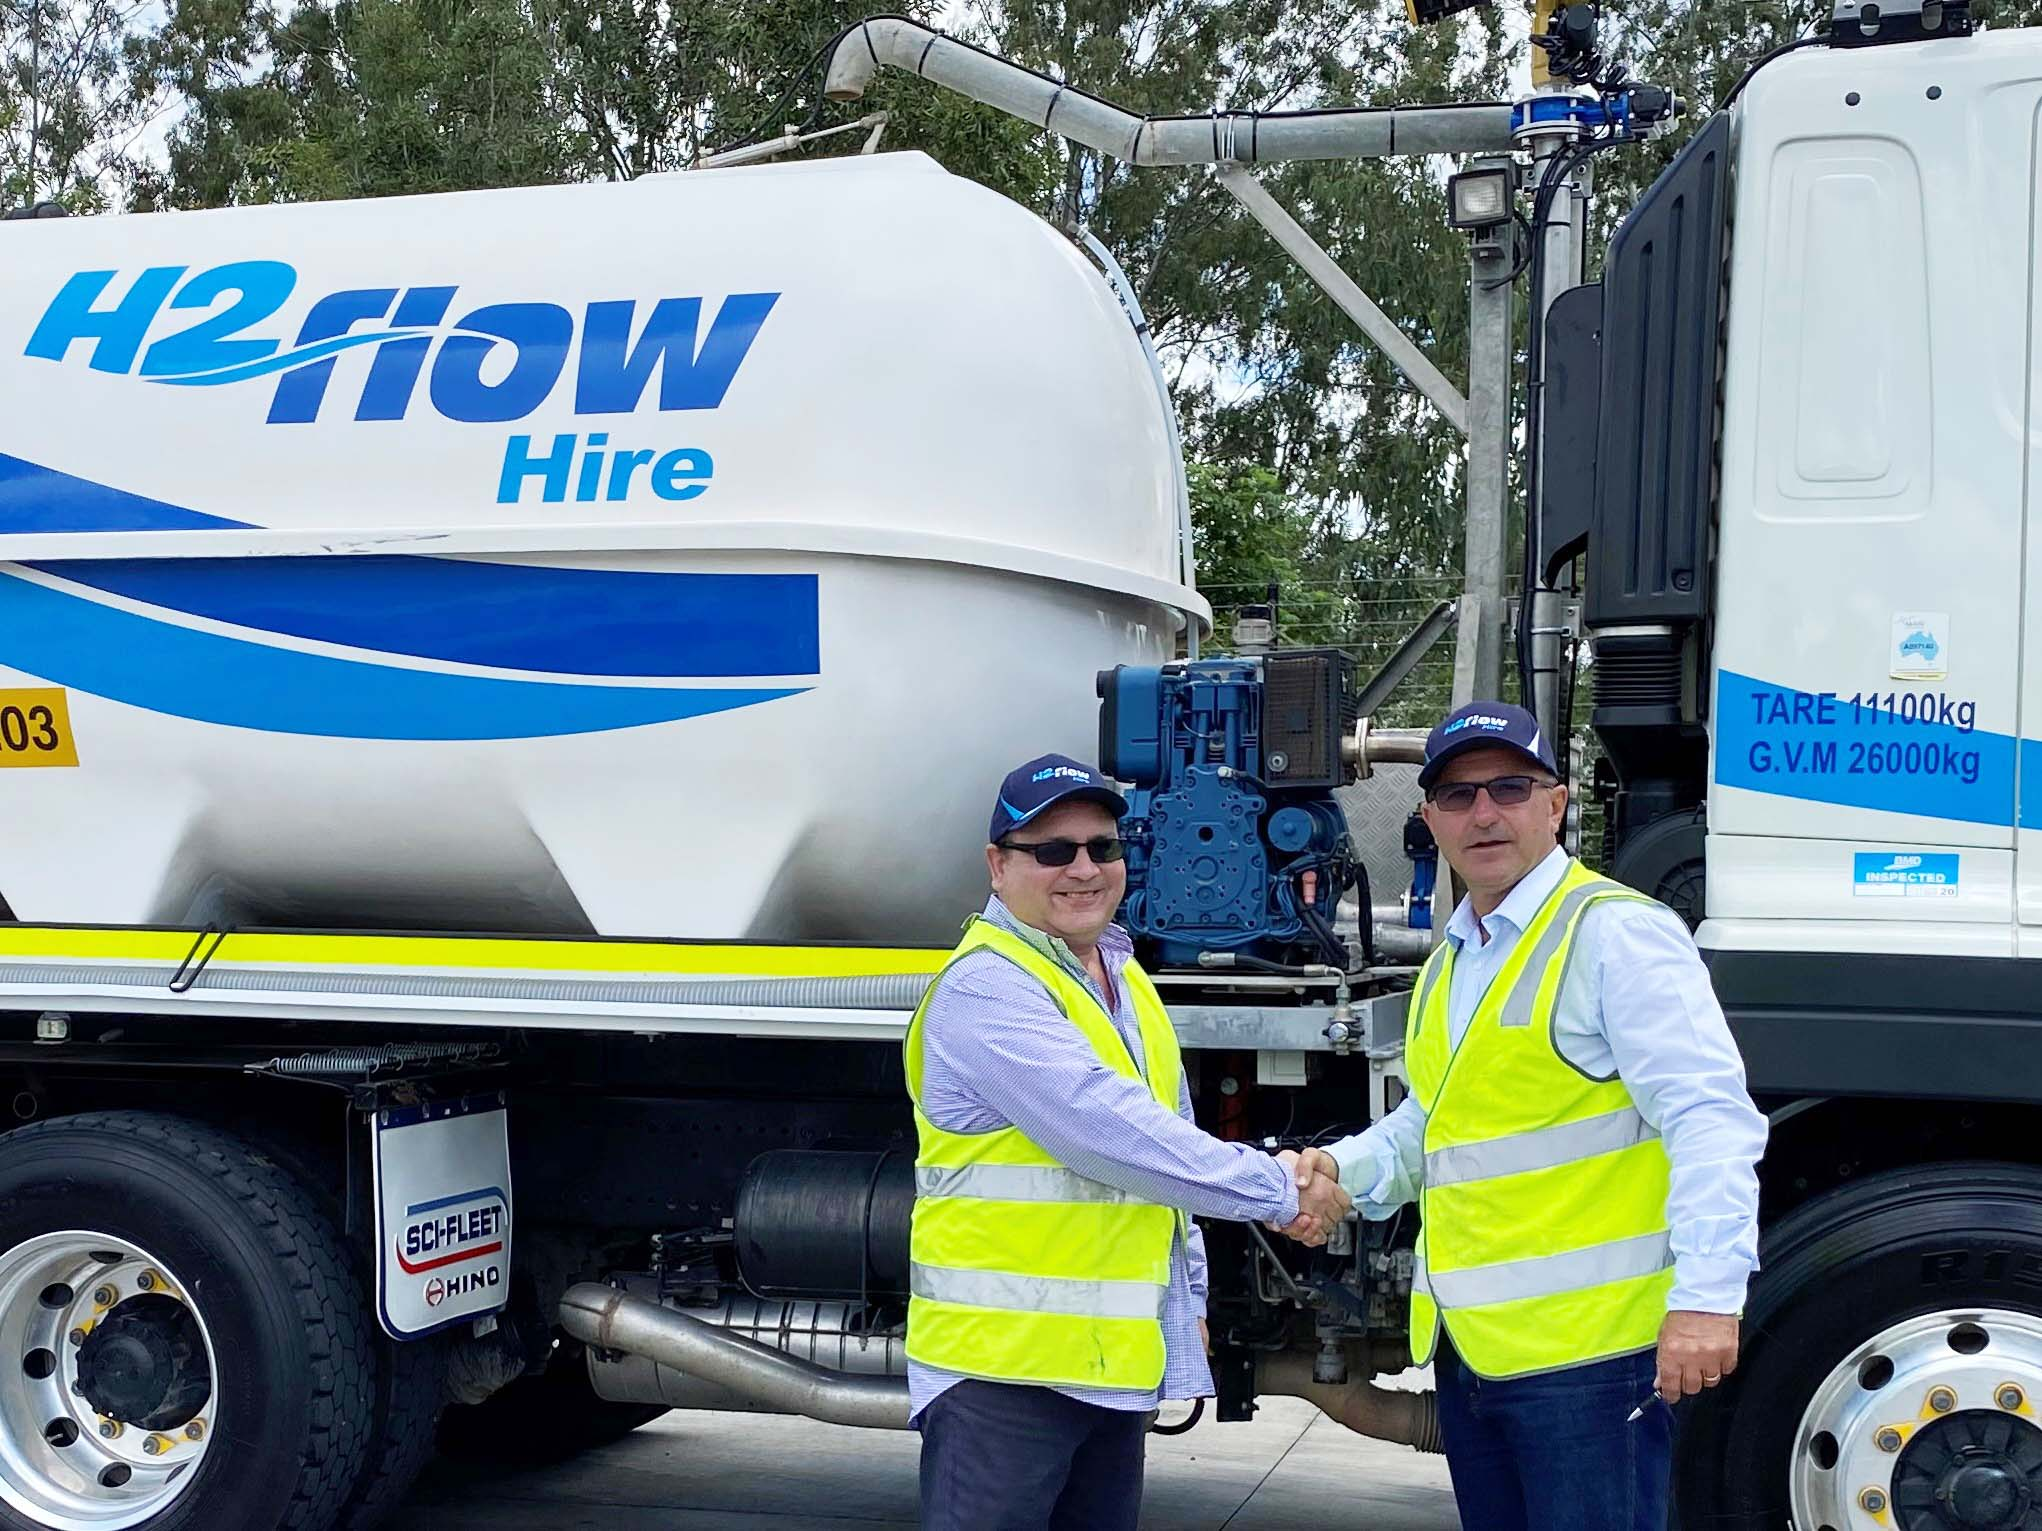 Paul Paulson from Nahri and H2flow Hire Director Mark Broekman in front of a H2flow Hire water truck.